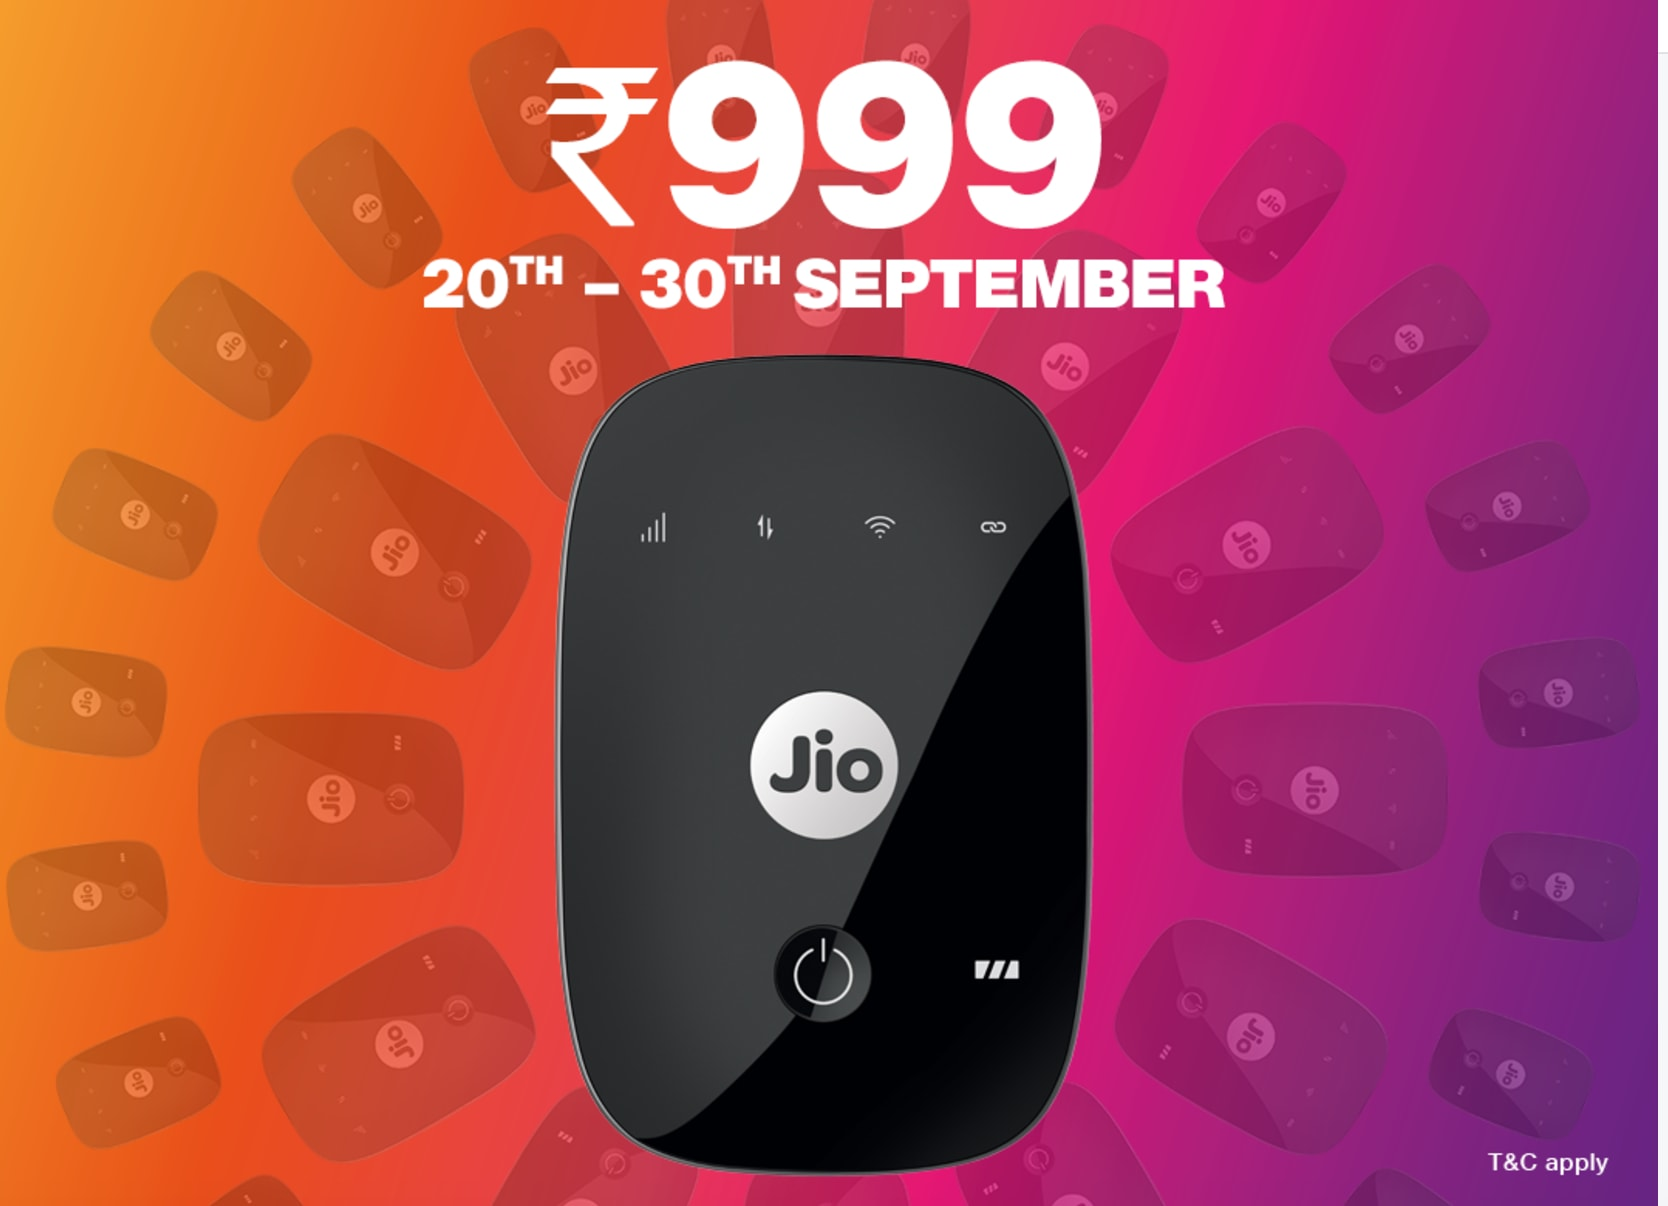 JioFi for just Rs 999